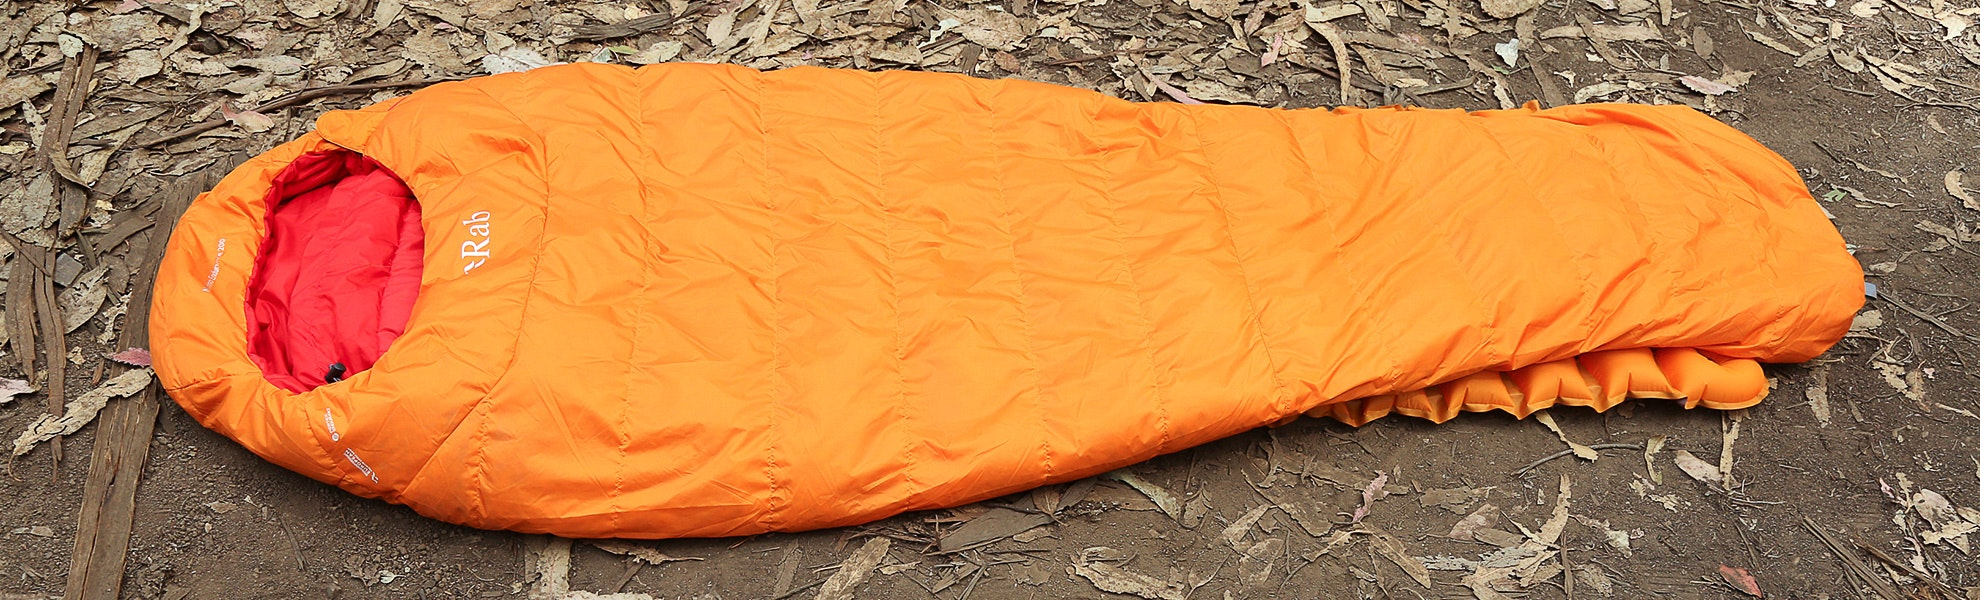 Rab Neutrino Endurance Sleeping Bags